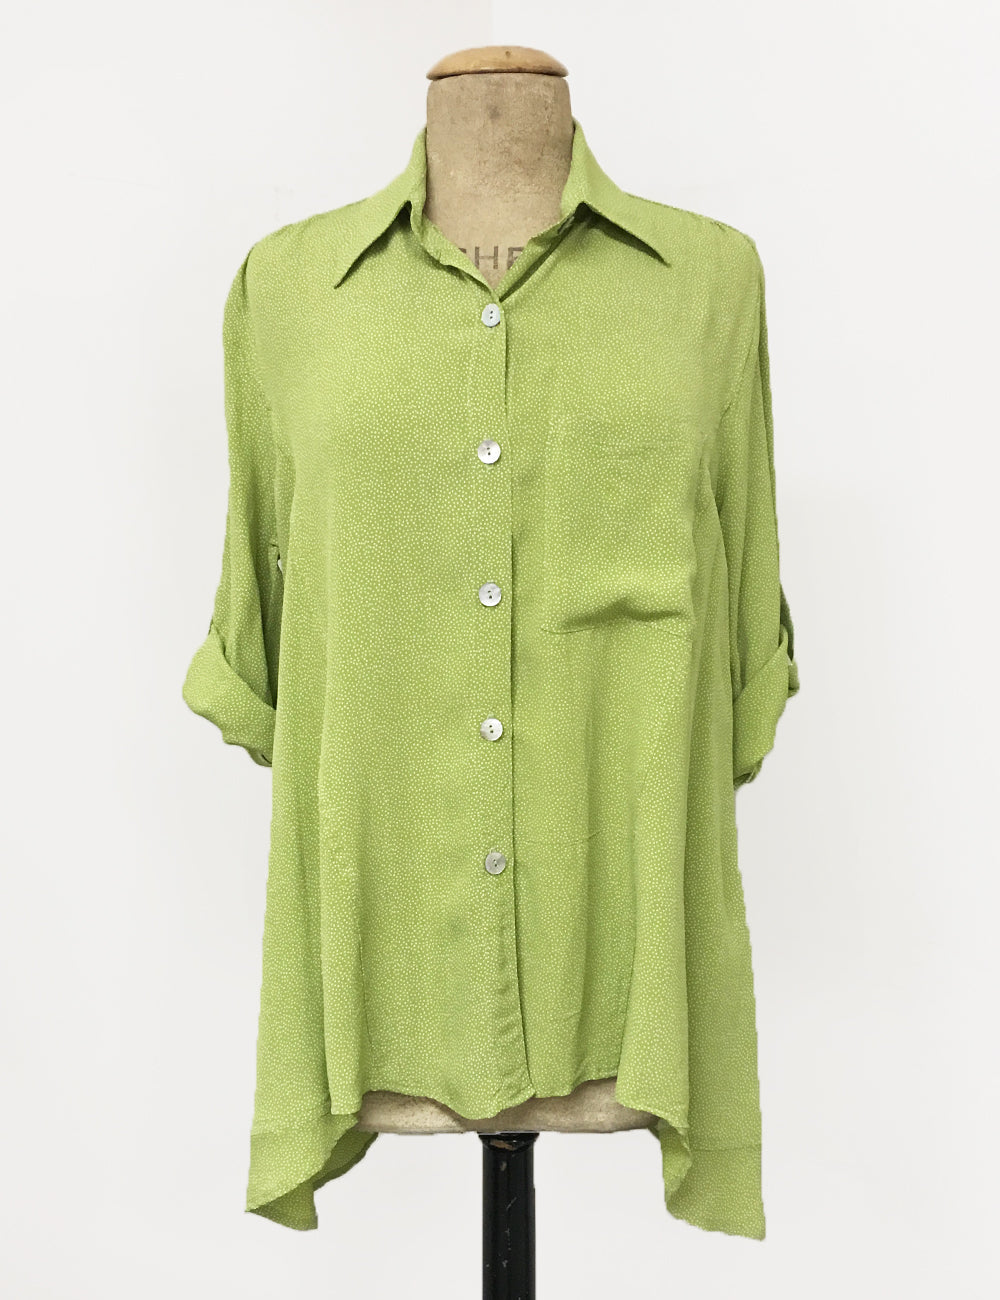 Chartreuse Green Pixie Dot Button Up Collared Hi-Low Blouse